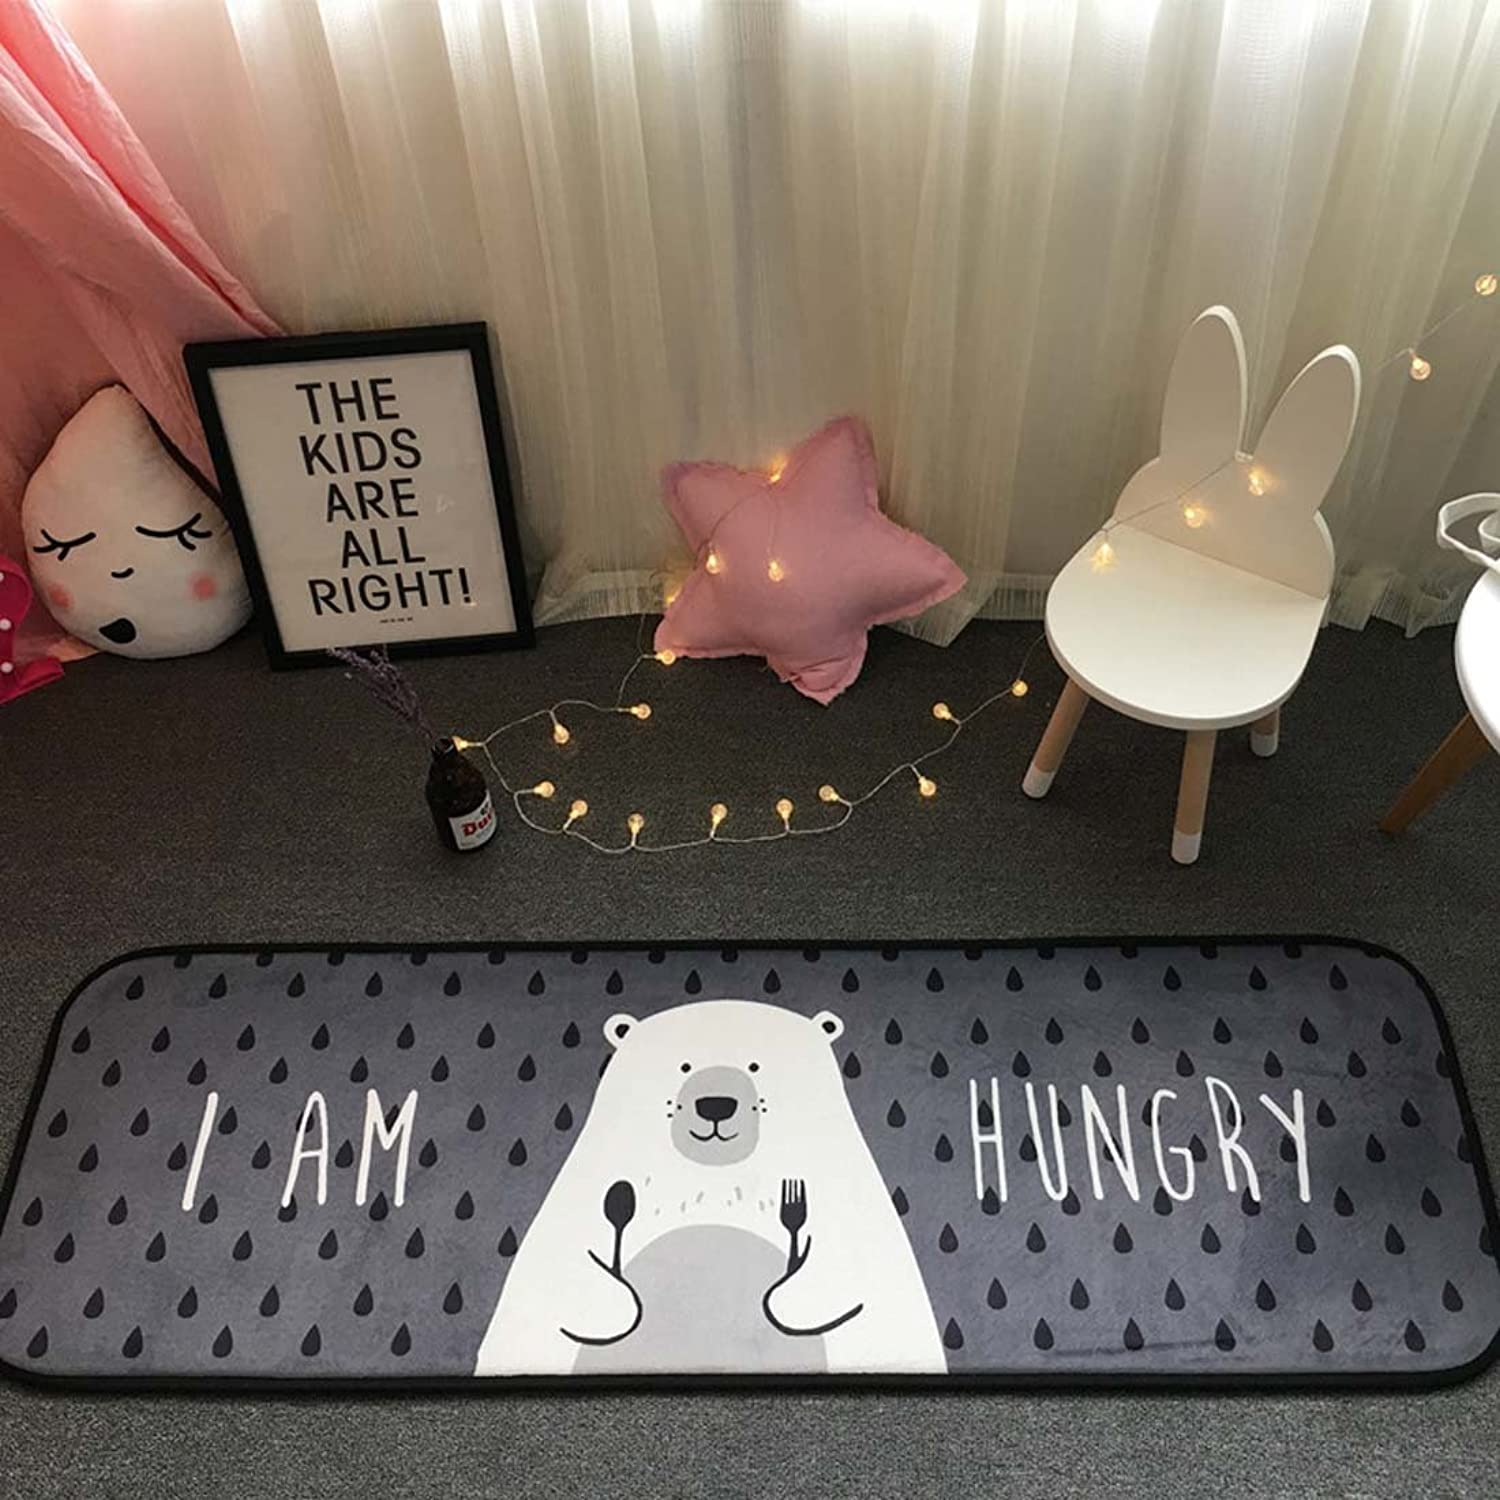 BABE MAPS Indoor Outdoor 2PCS Doormat Entrance Welcome Mat Absorbent Runner Inserts Non Slip Entry Rug Funny Greedy Bear, Home Decor Inside shoes Scraper Floor Carpet 19 x27  19 x58